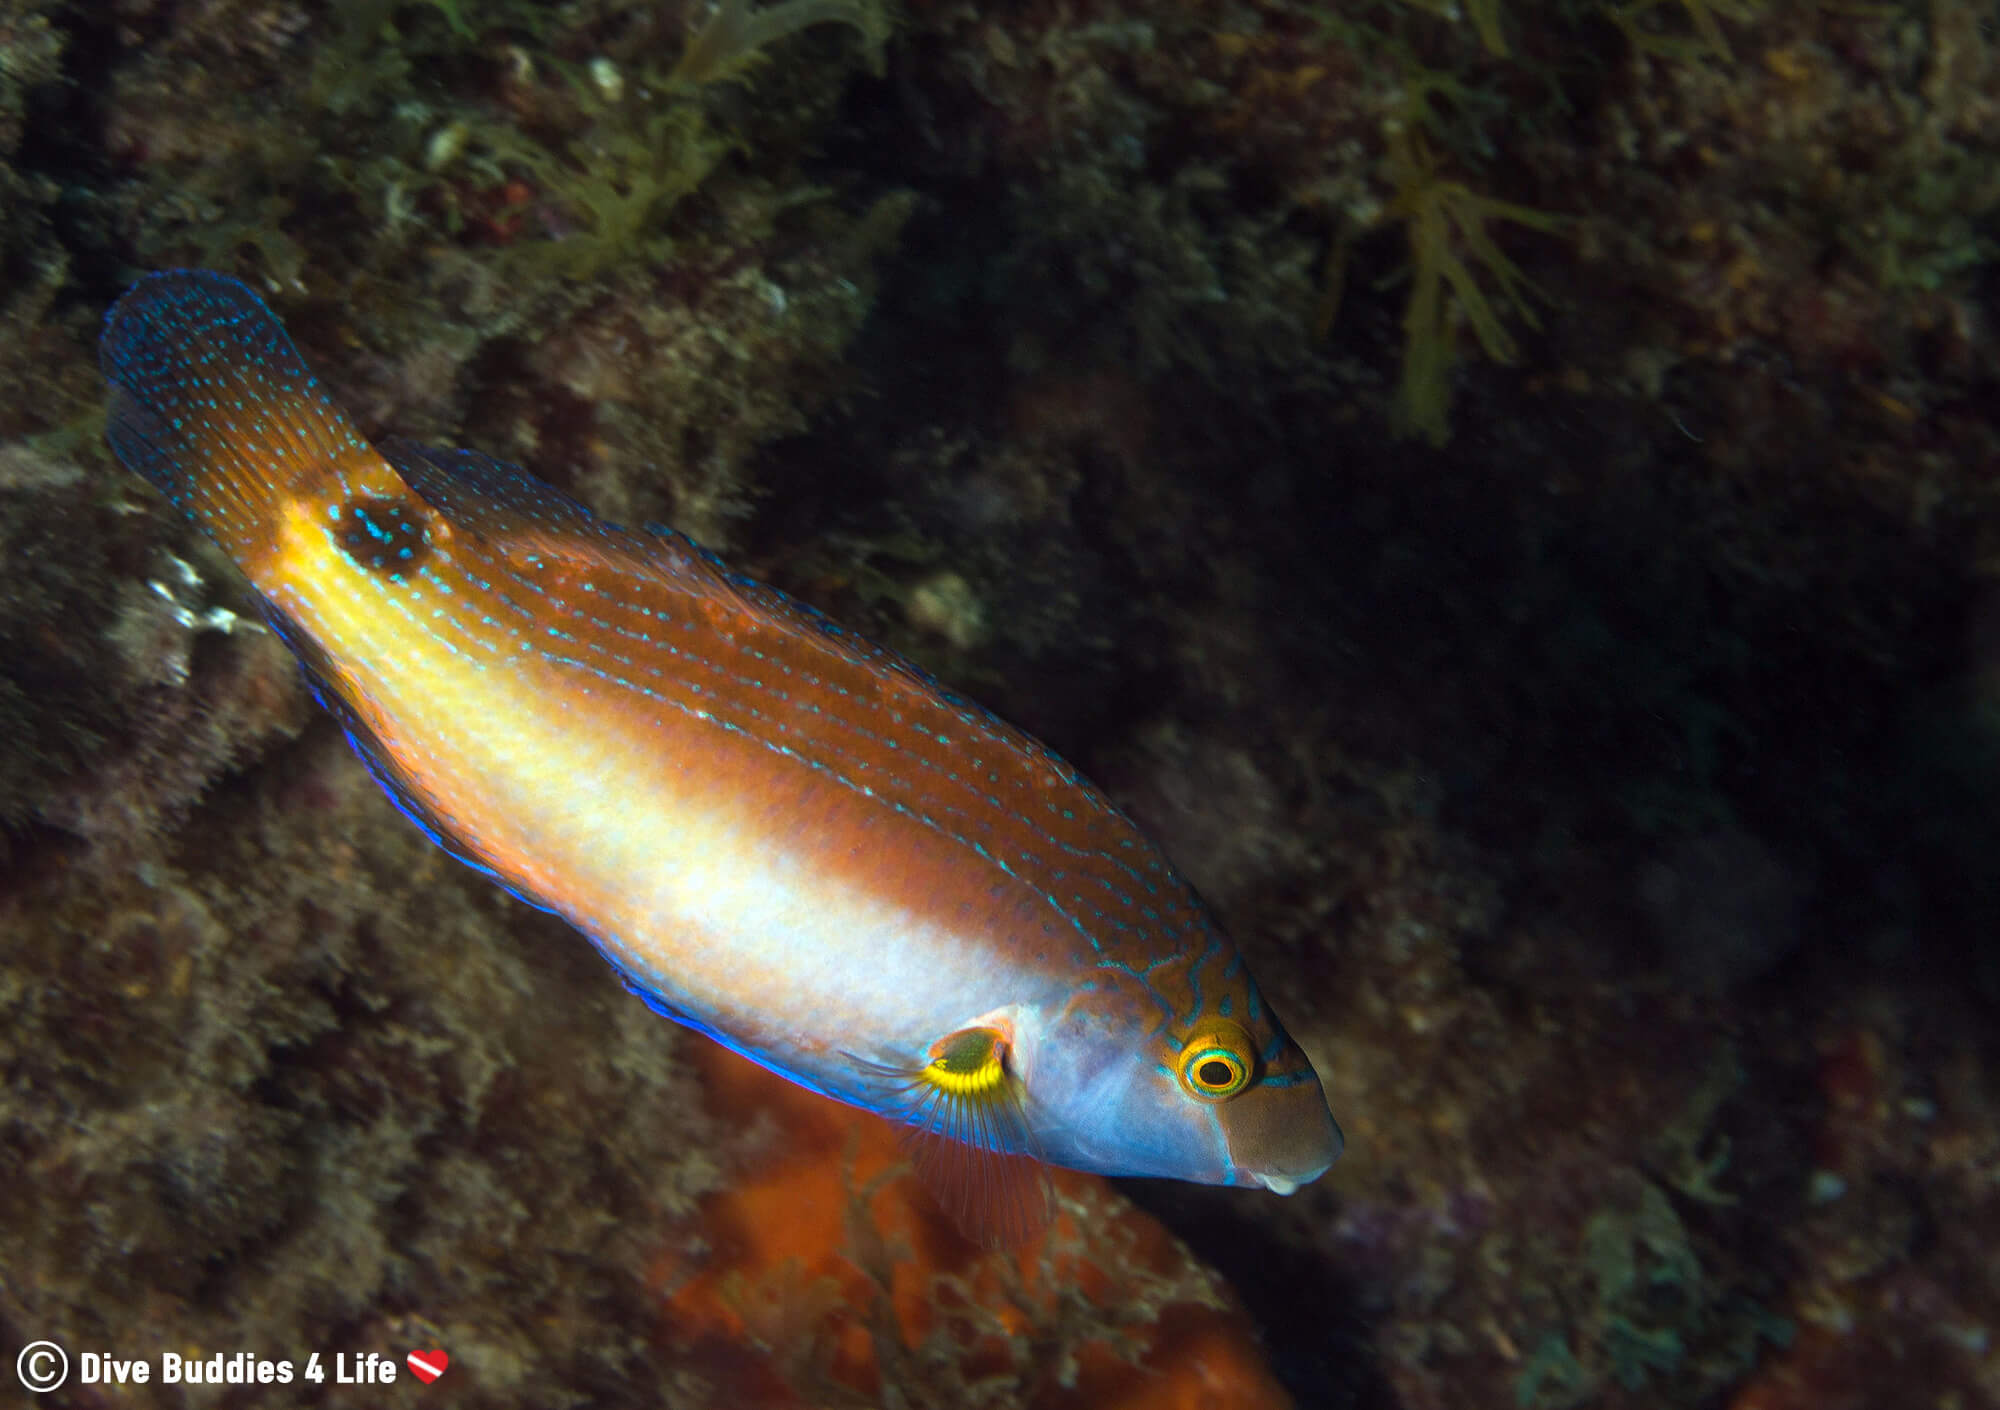 A Swimming Wrasse Fish Underwater In Costa Brava, Spain, Europe